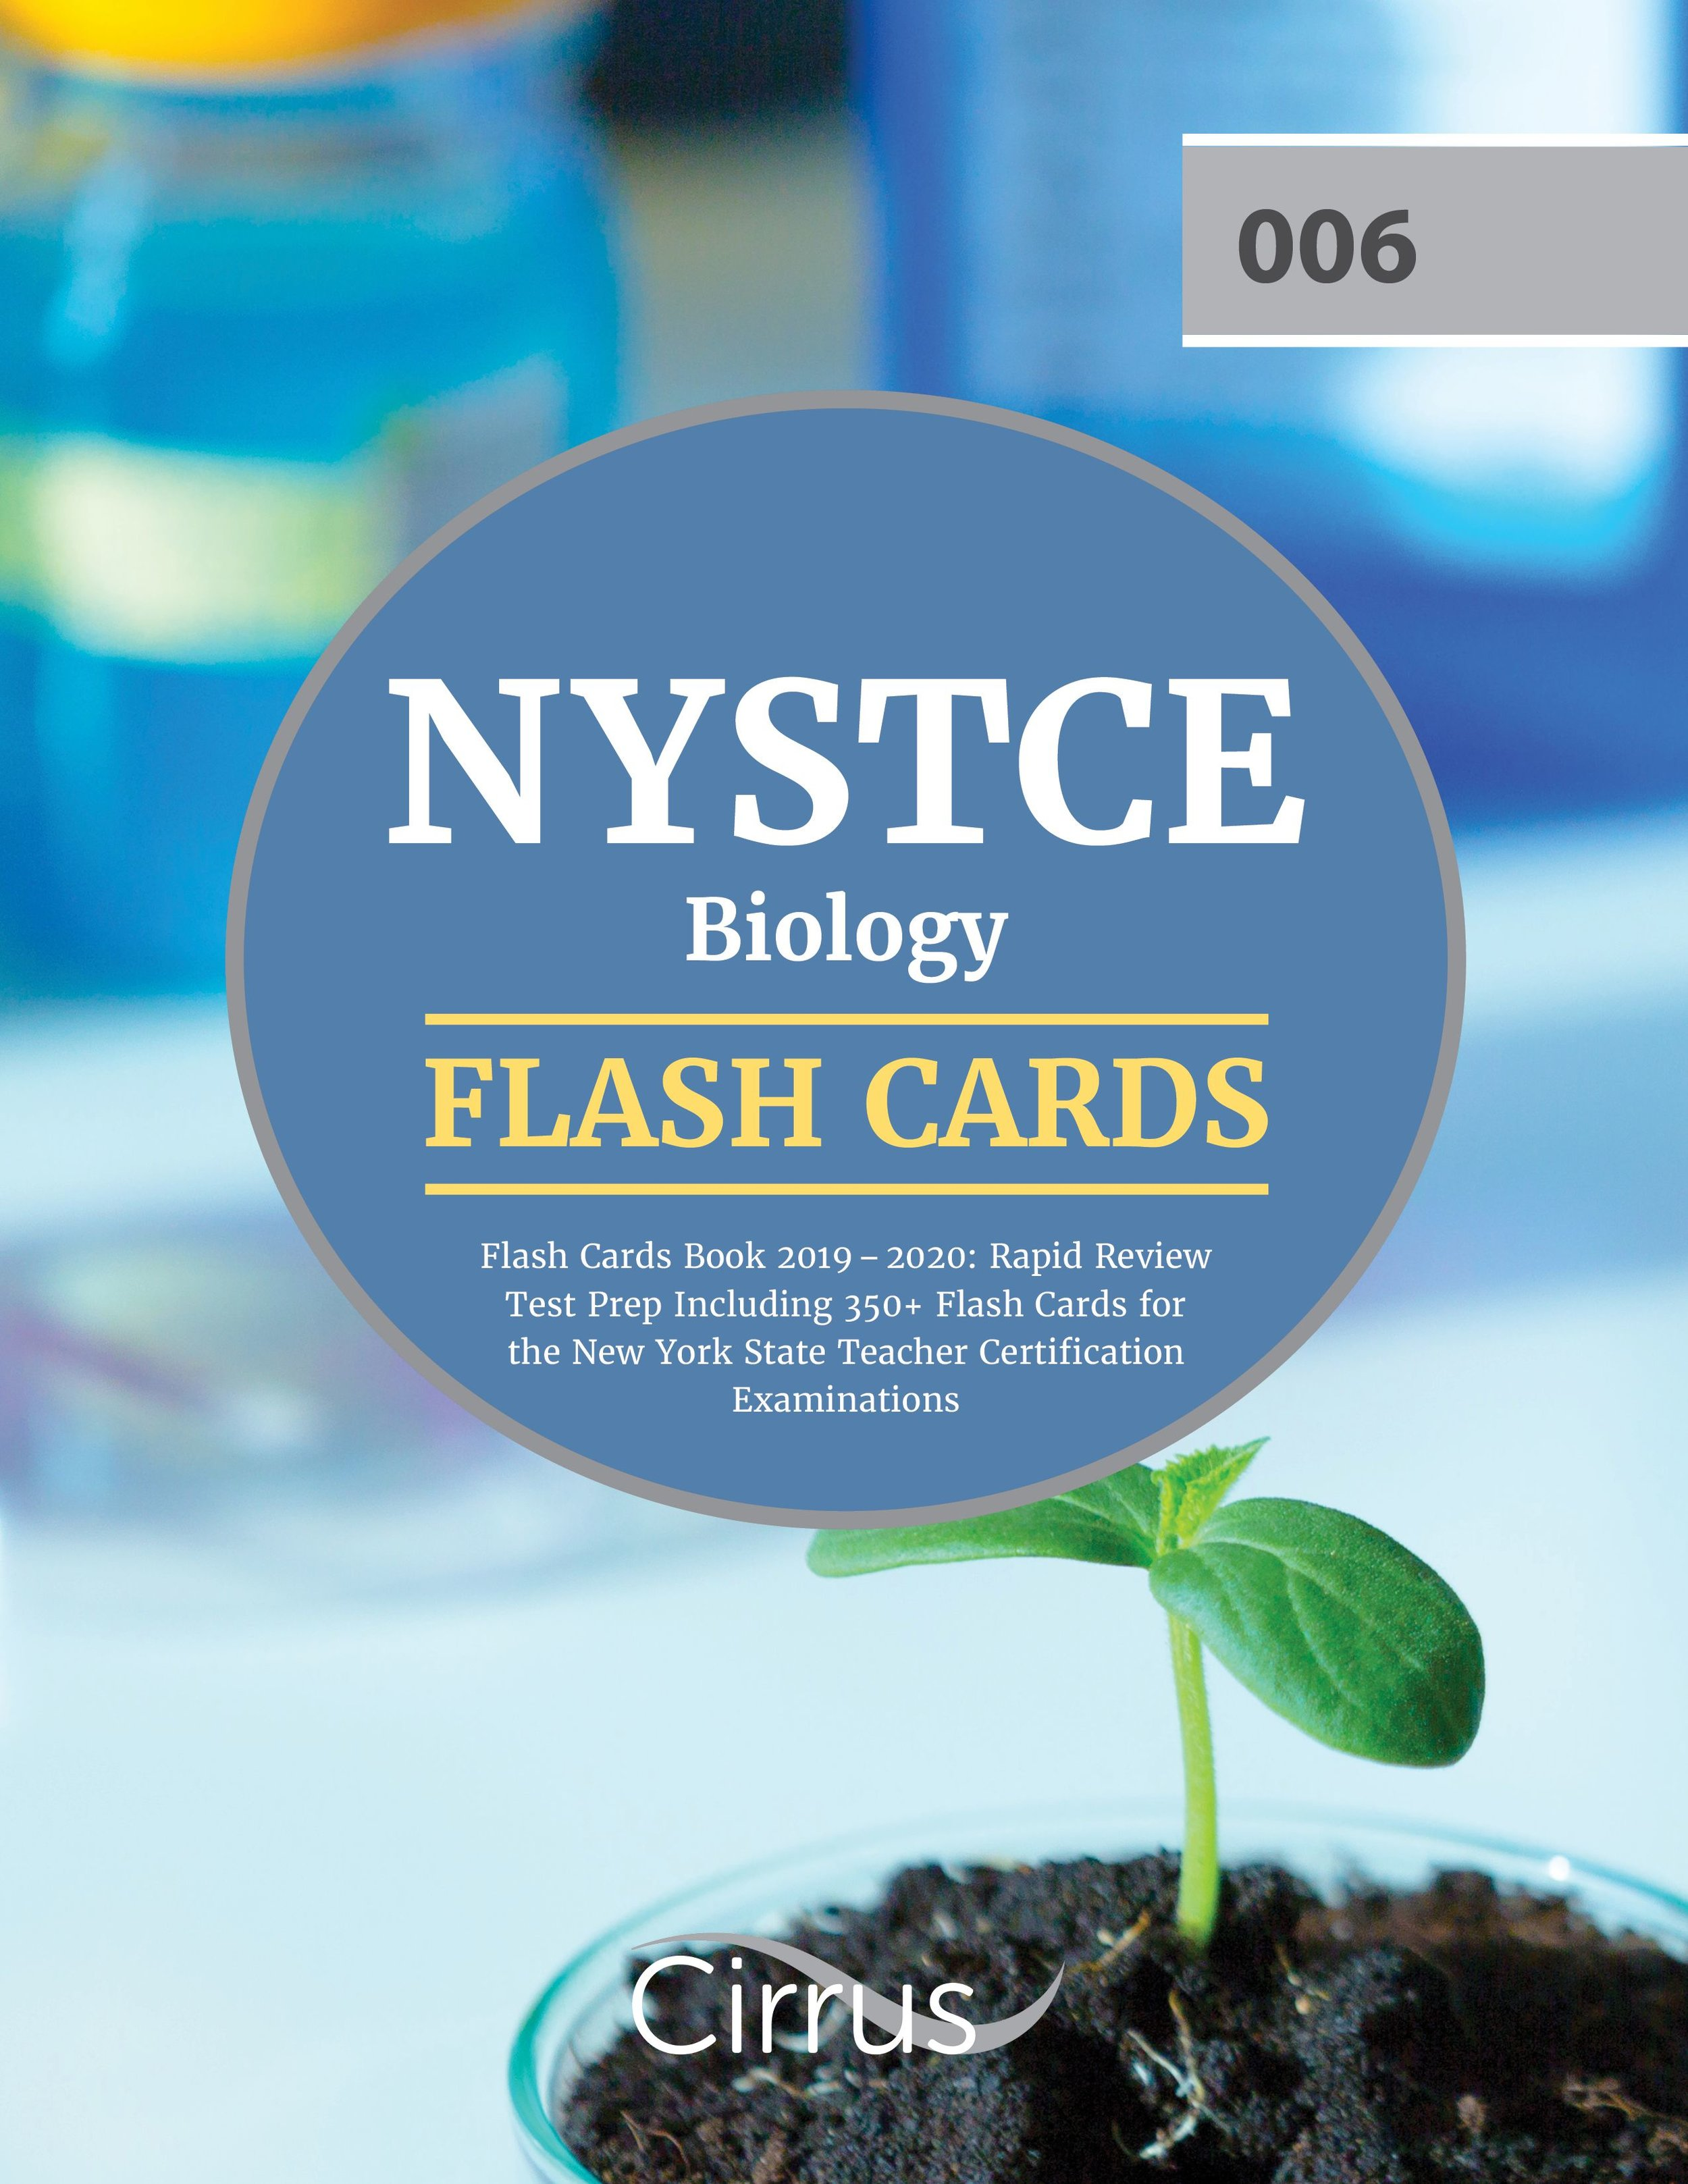 NYSTCE Biology (006) Flash Cards Book  2019 – 2020